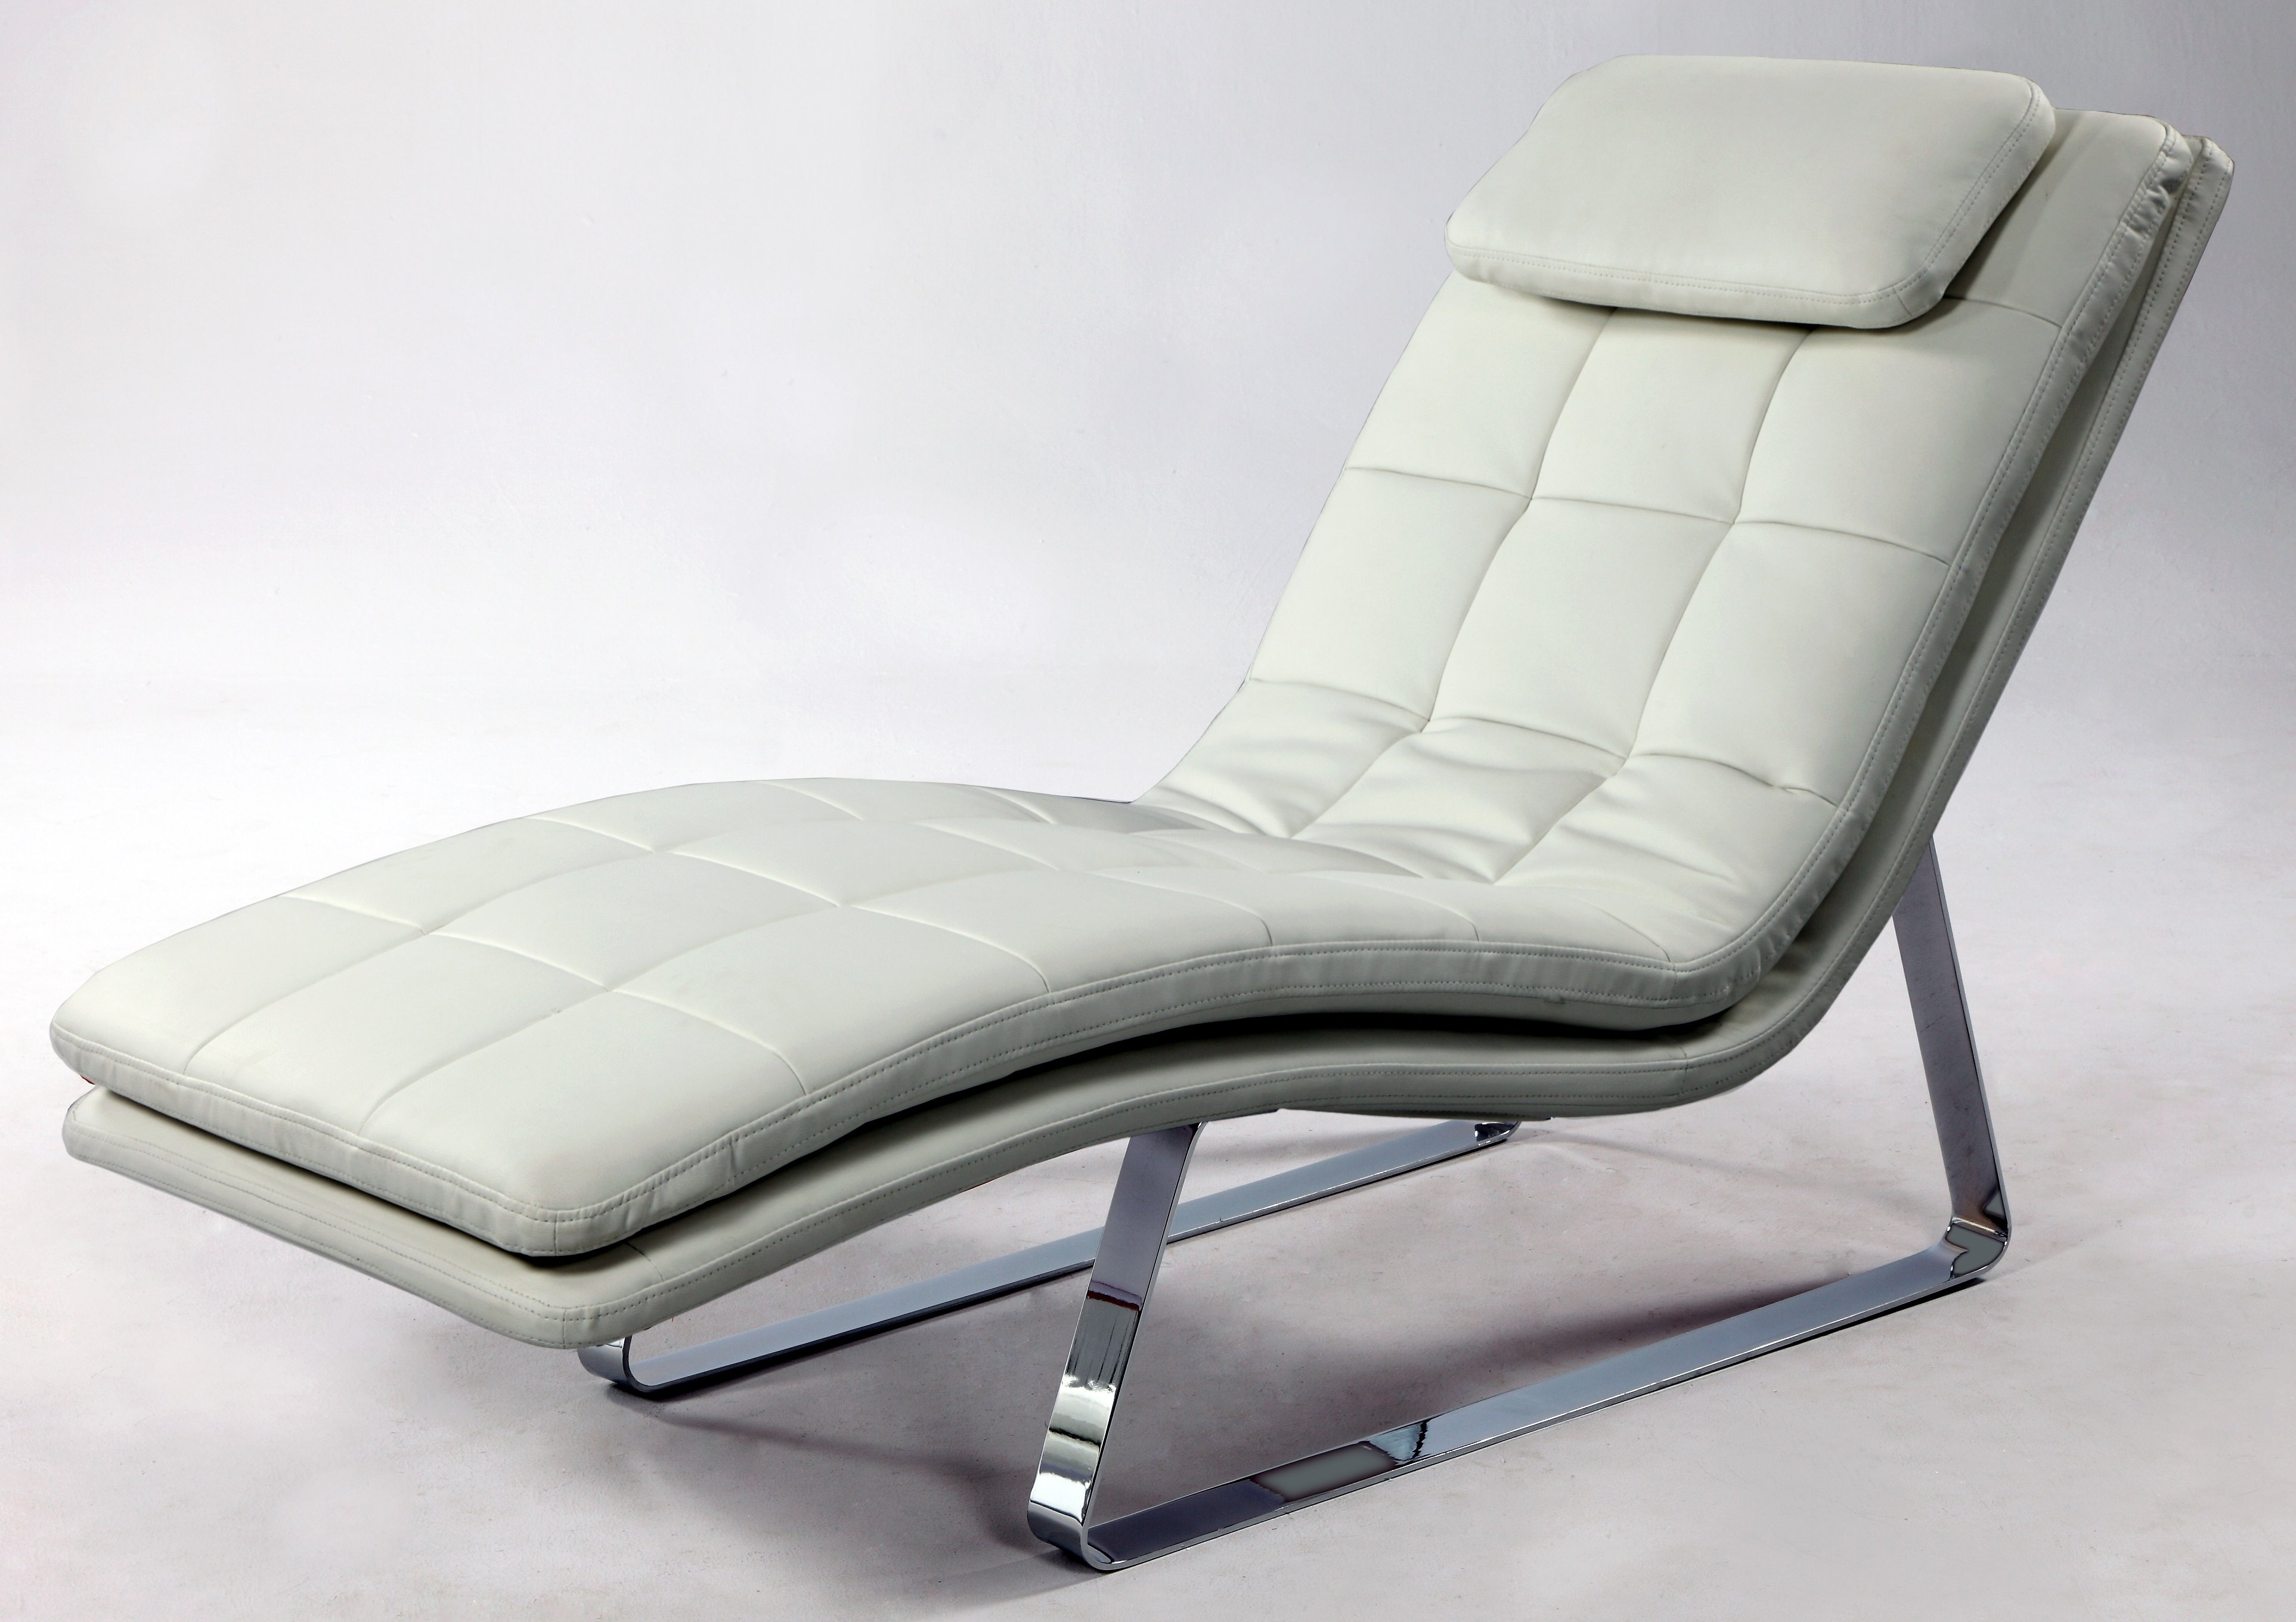 Modern Chaise Lounges For Most Current Full Bonded Leather Tufted Chaise Lounge With Chrome Legs New York (View 7 of 15)